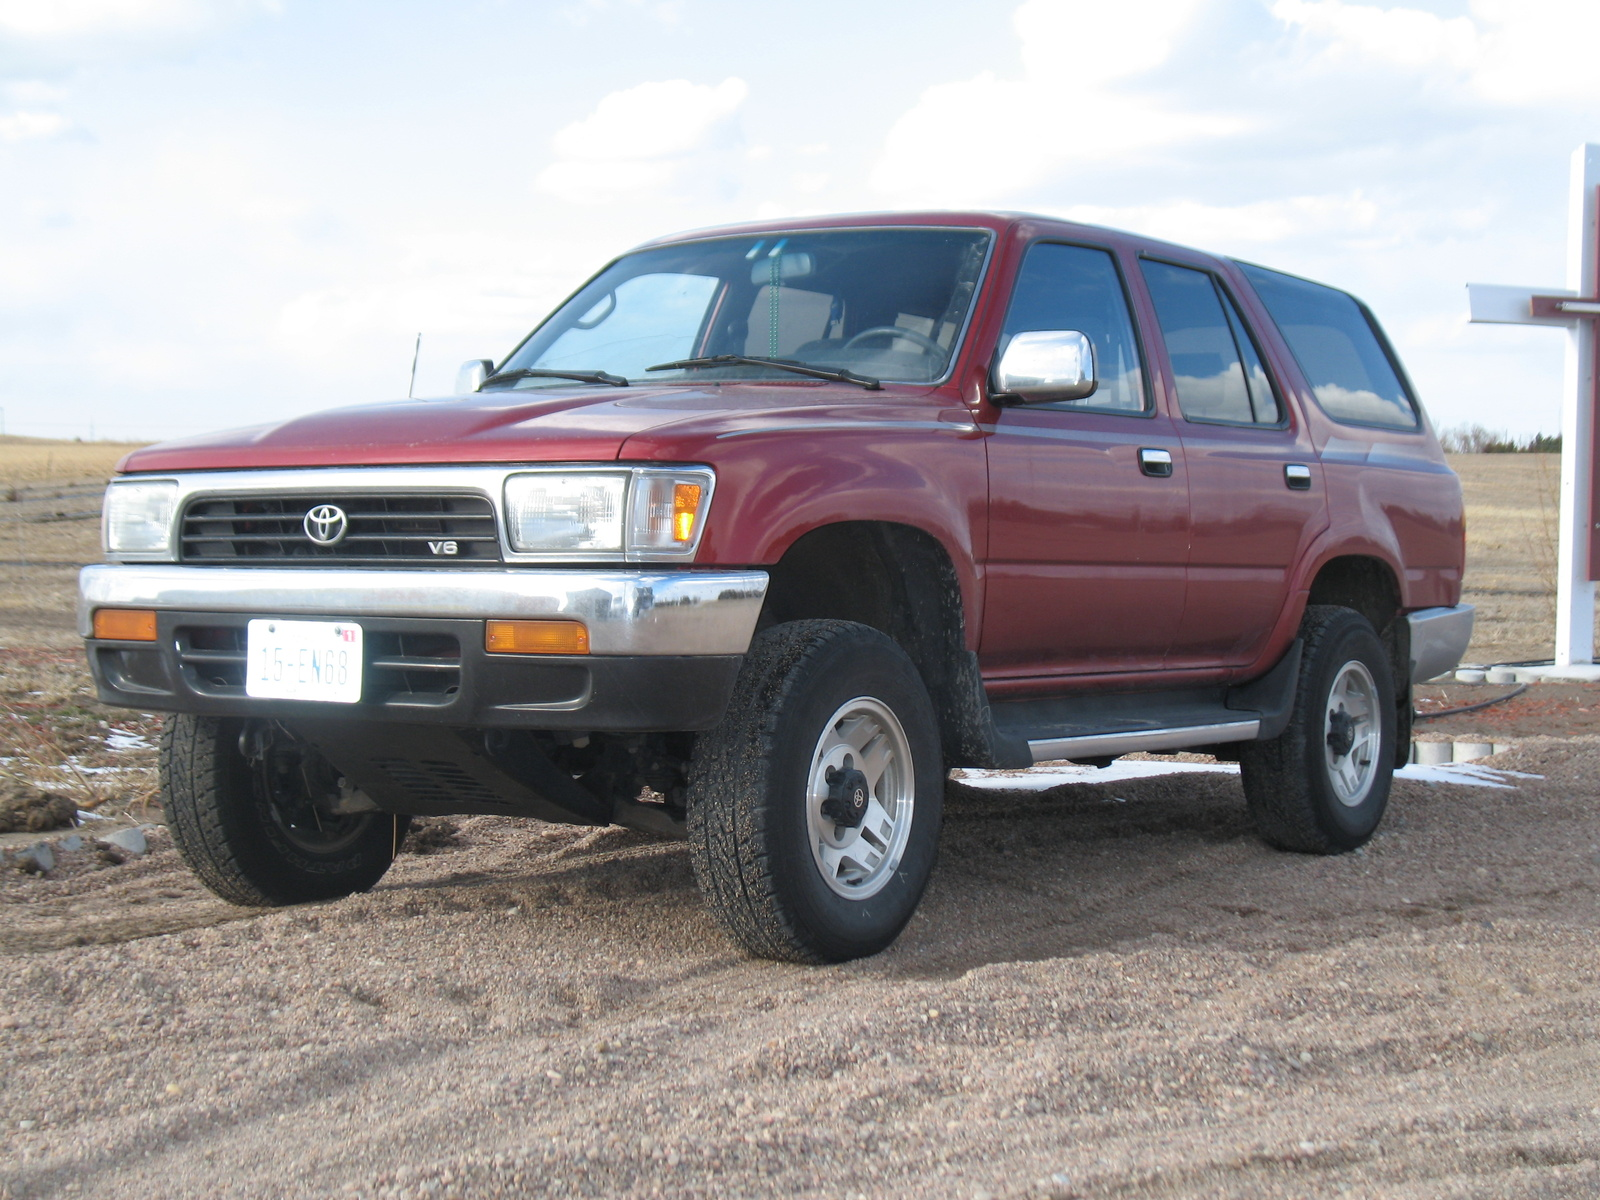 toyota 4 runner photos 17 on better parts ltd. Black Bedroom Furniture Sets. Home Design Ideas